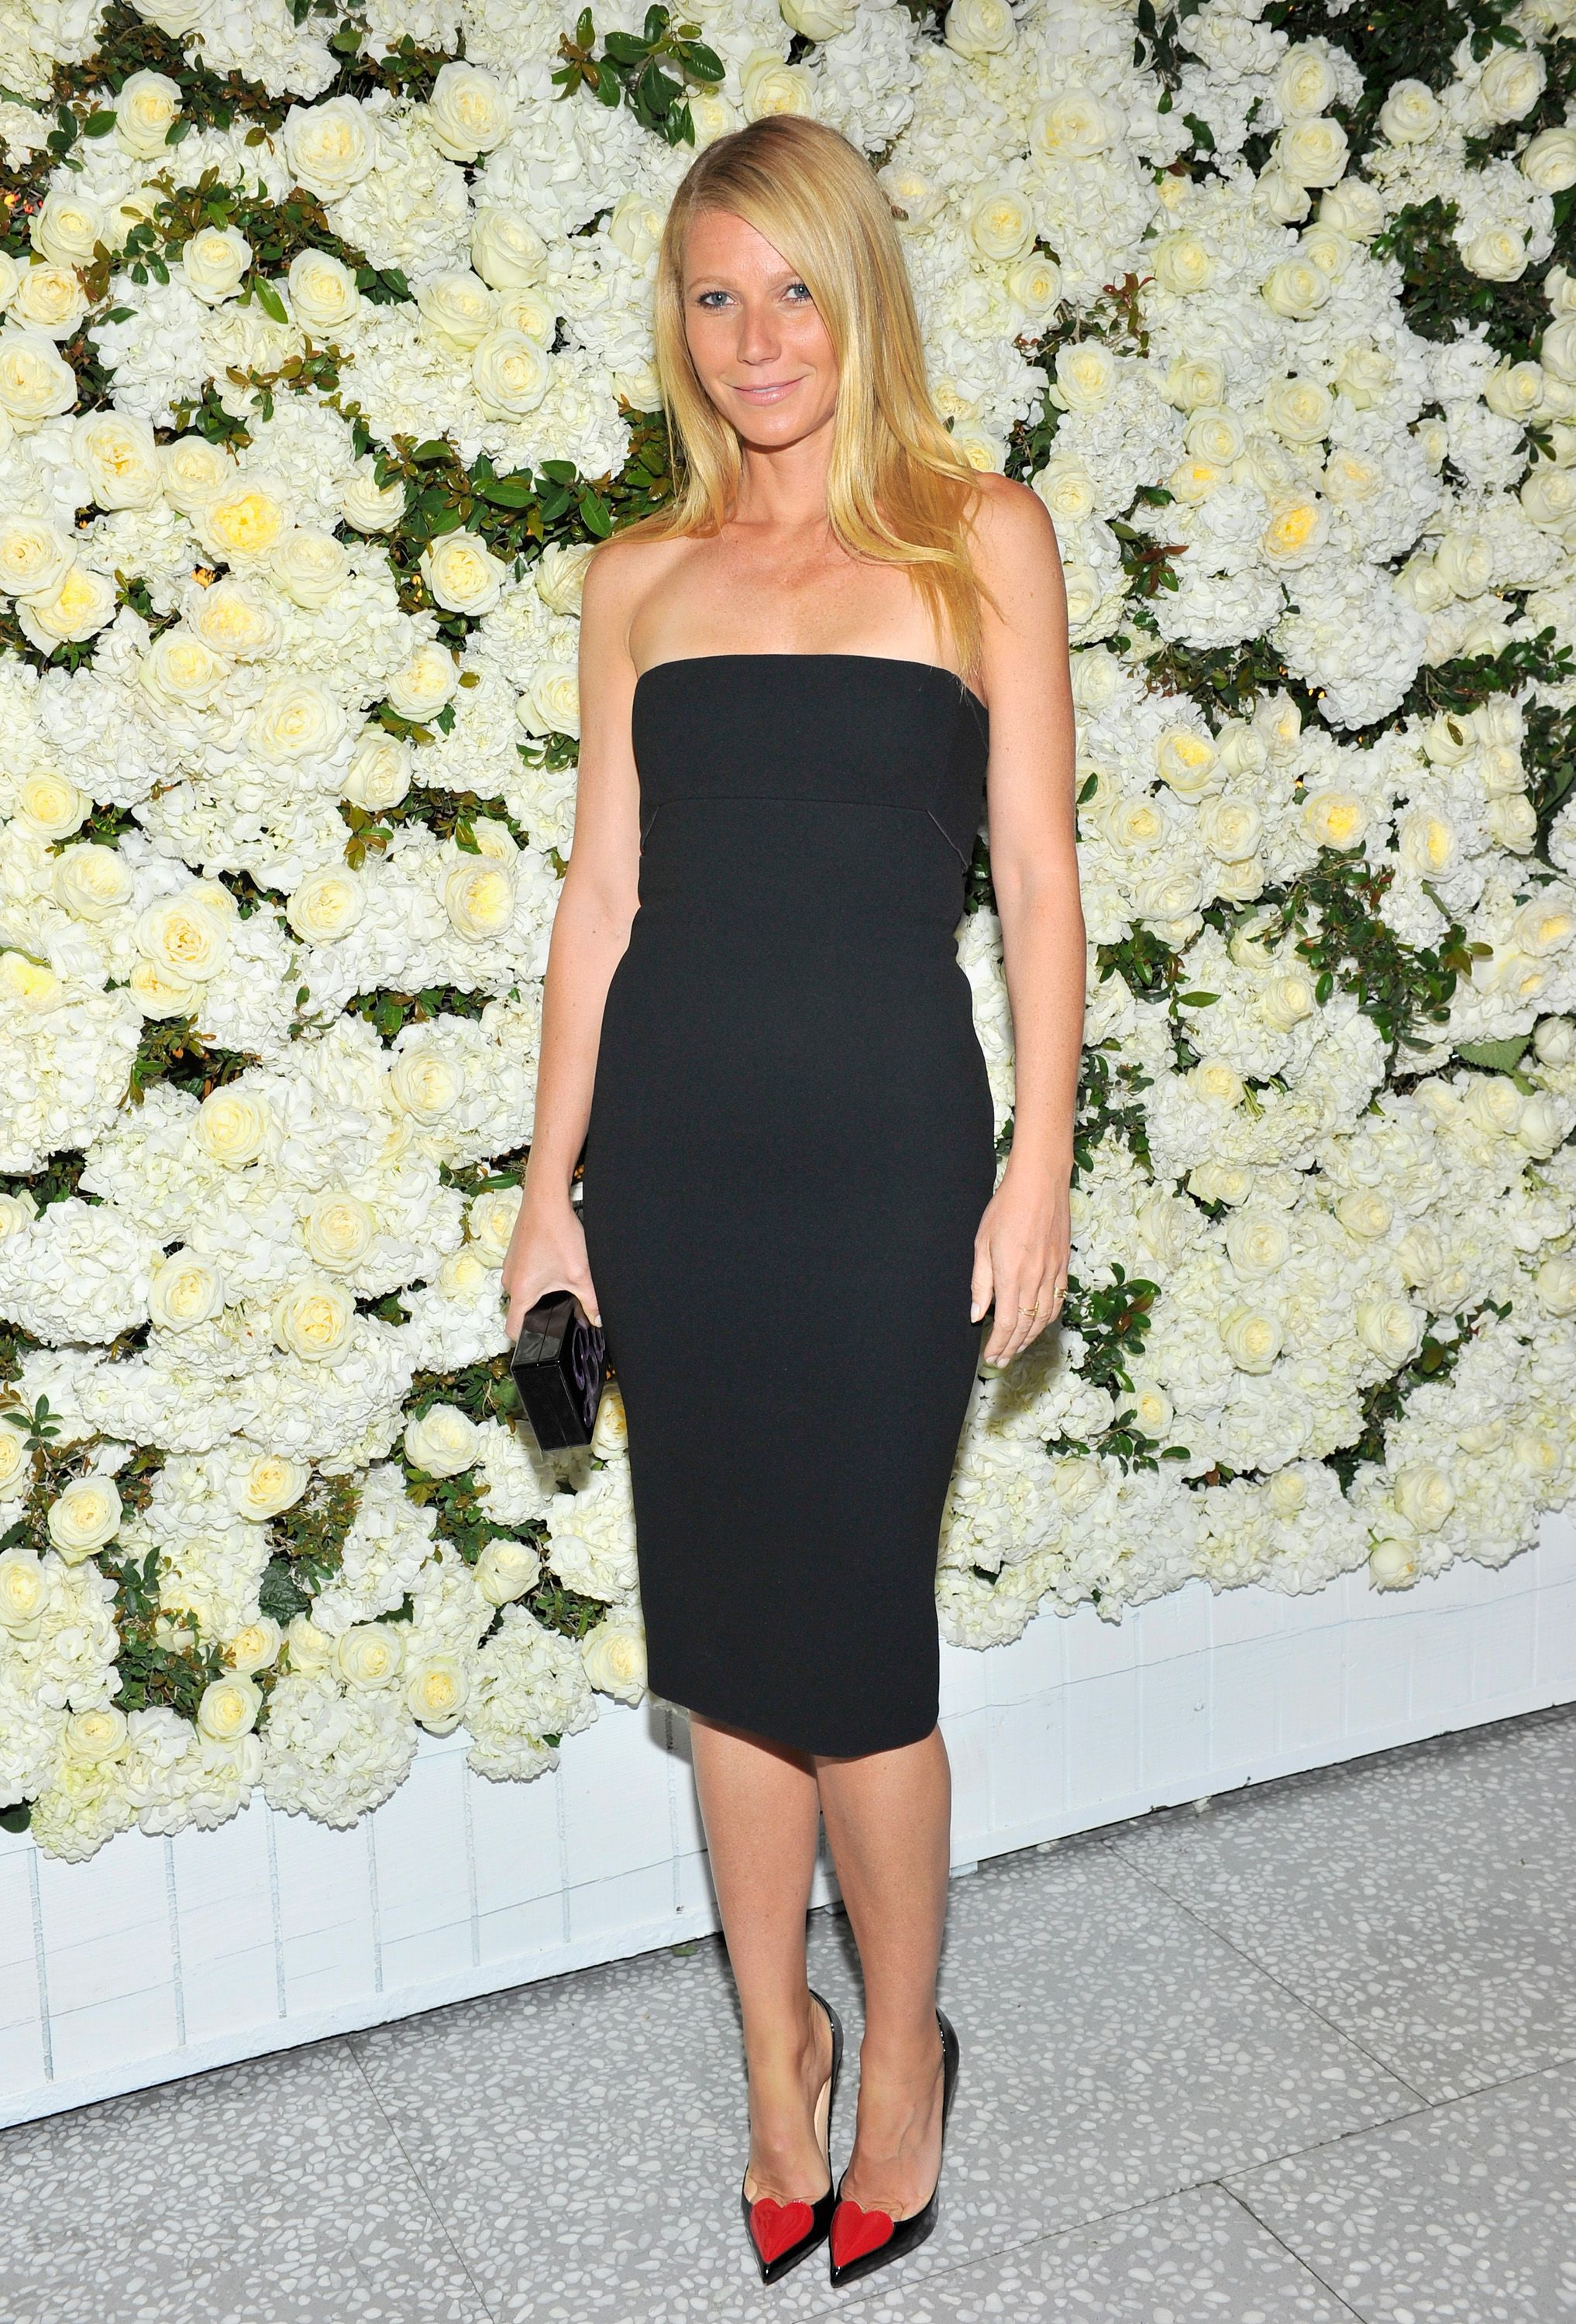 This week's best dressed dared to be bold: Gwyneth Paltrow.